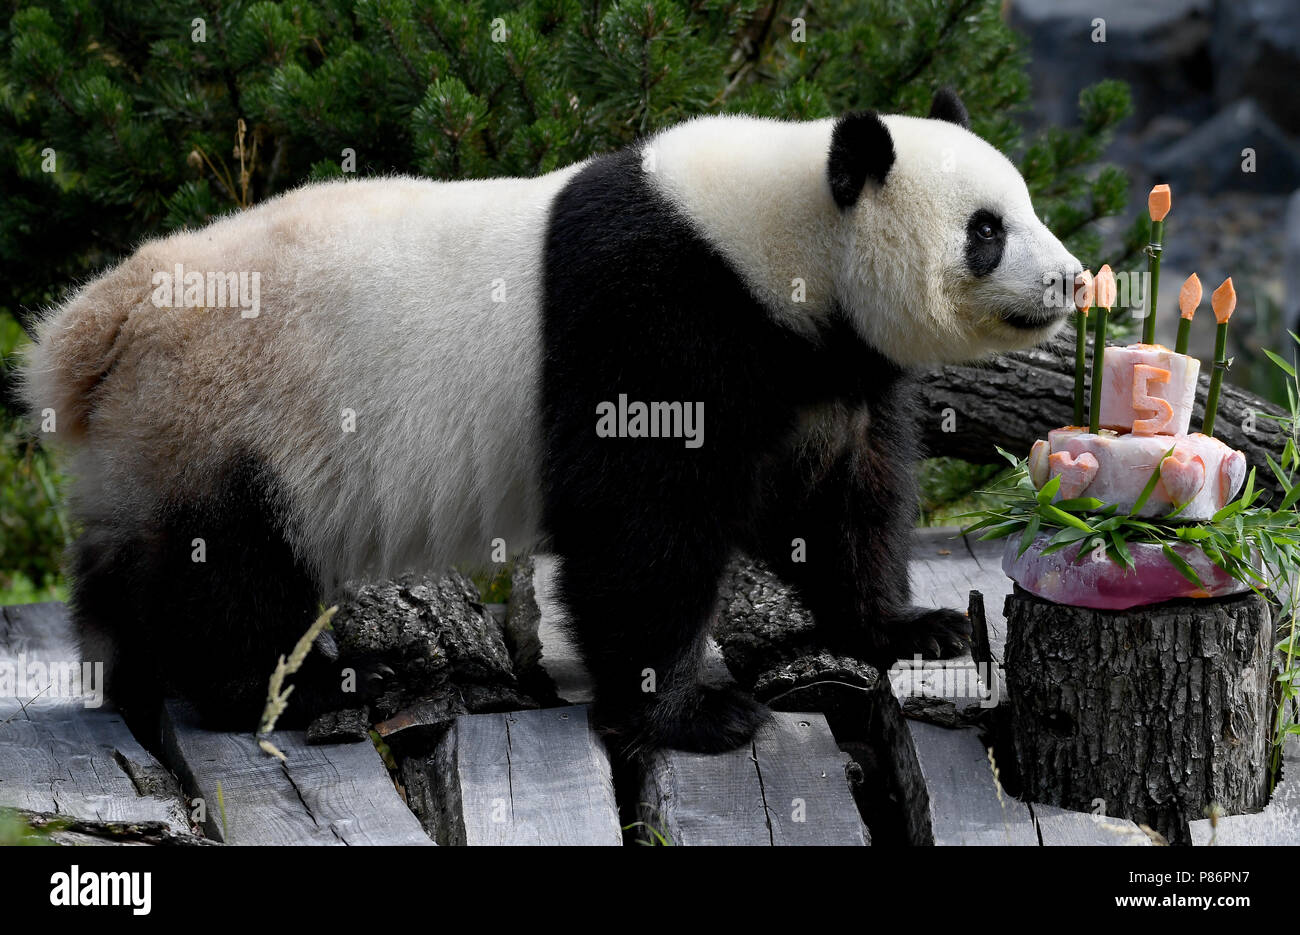 Berlin, Germany. 10th July, 2018. Panda female Meng Meng takes a look at her birthday cake at her enclosure at the Berlin Zoological Garden. The animal keepers served a sugar-free birthday cake with delicacies like bamboo, apples, carrots and ice. Together with the male panda Jiao Qing the panda female Meng Meng from a reserve in Chengdu lives at the Berlin zoo as a Chinese 'loan'. Credit: Britta Pedersen/dpa-Zentralbild/dpa/Alamy Live News - Stock Image